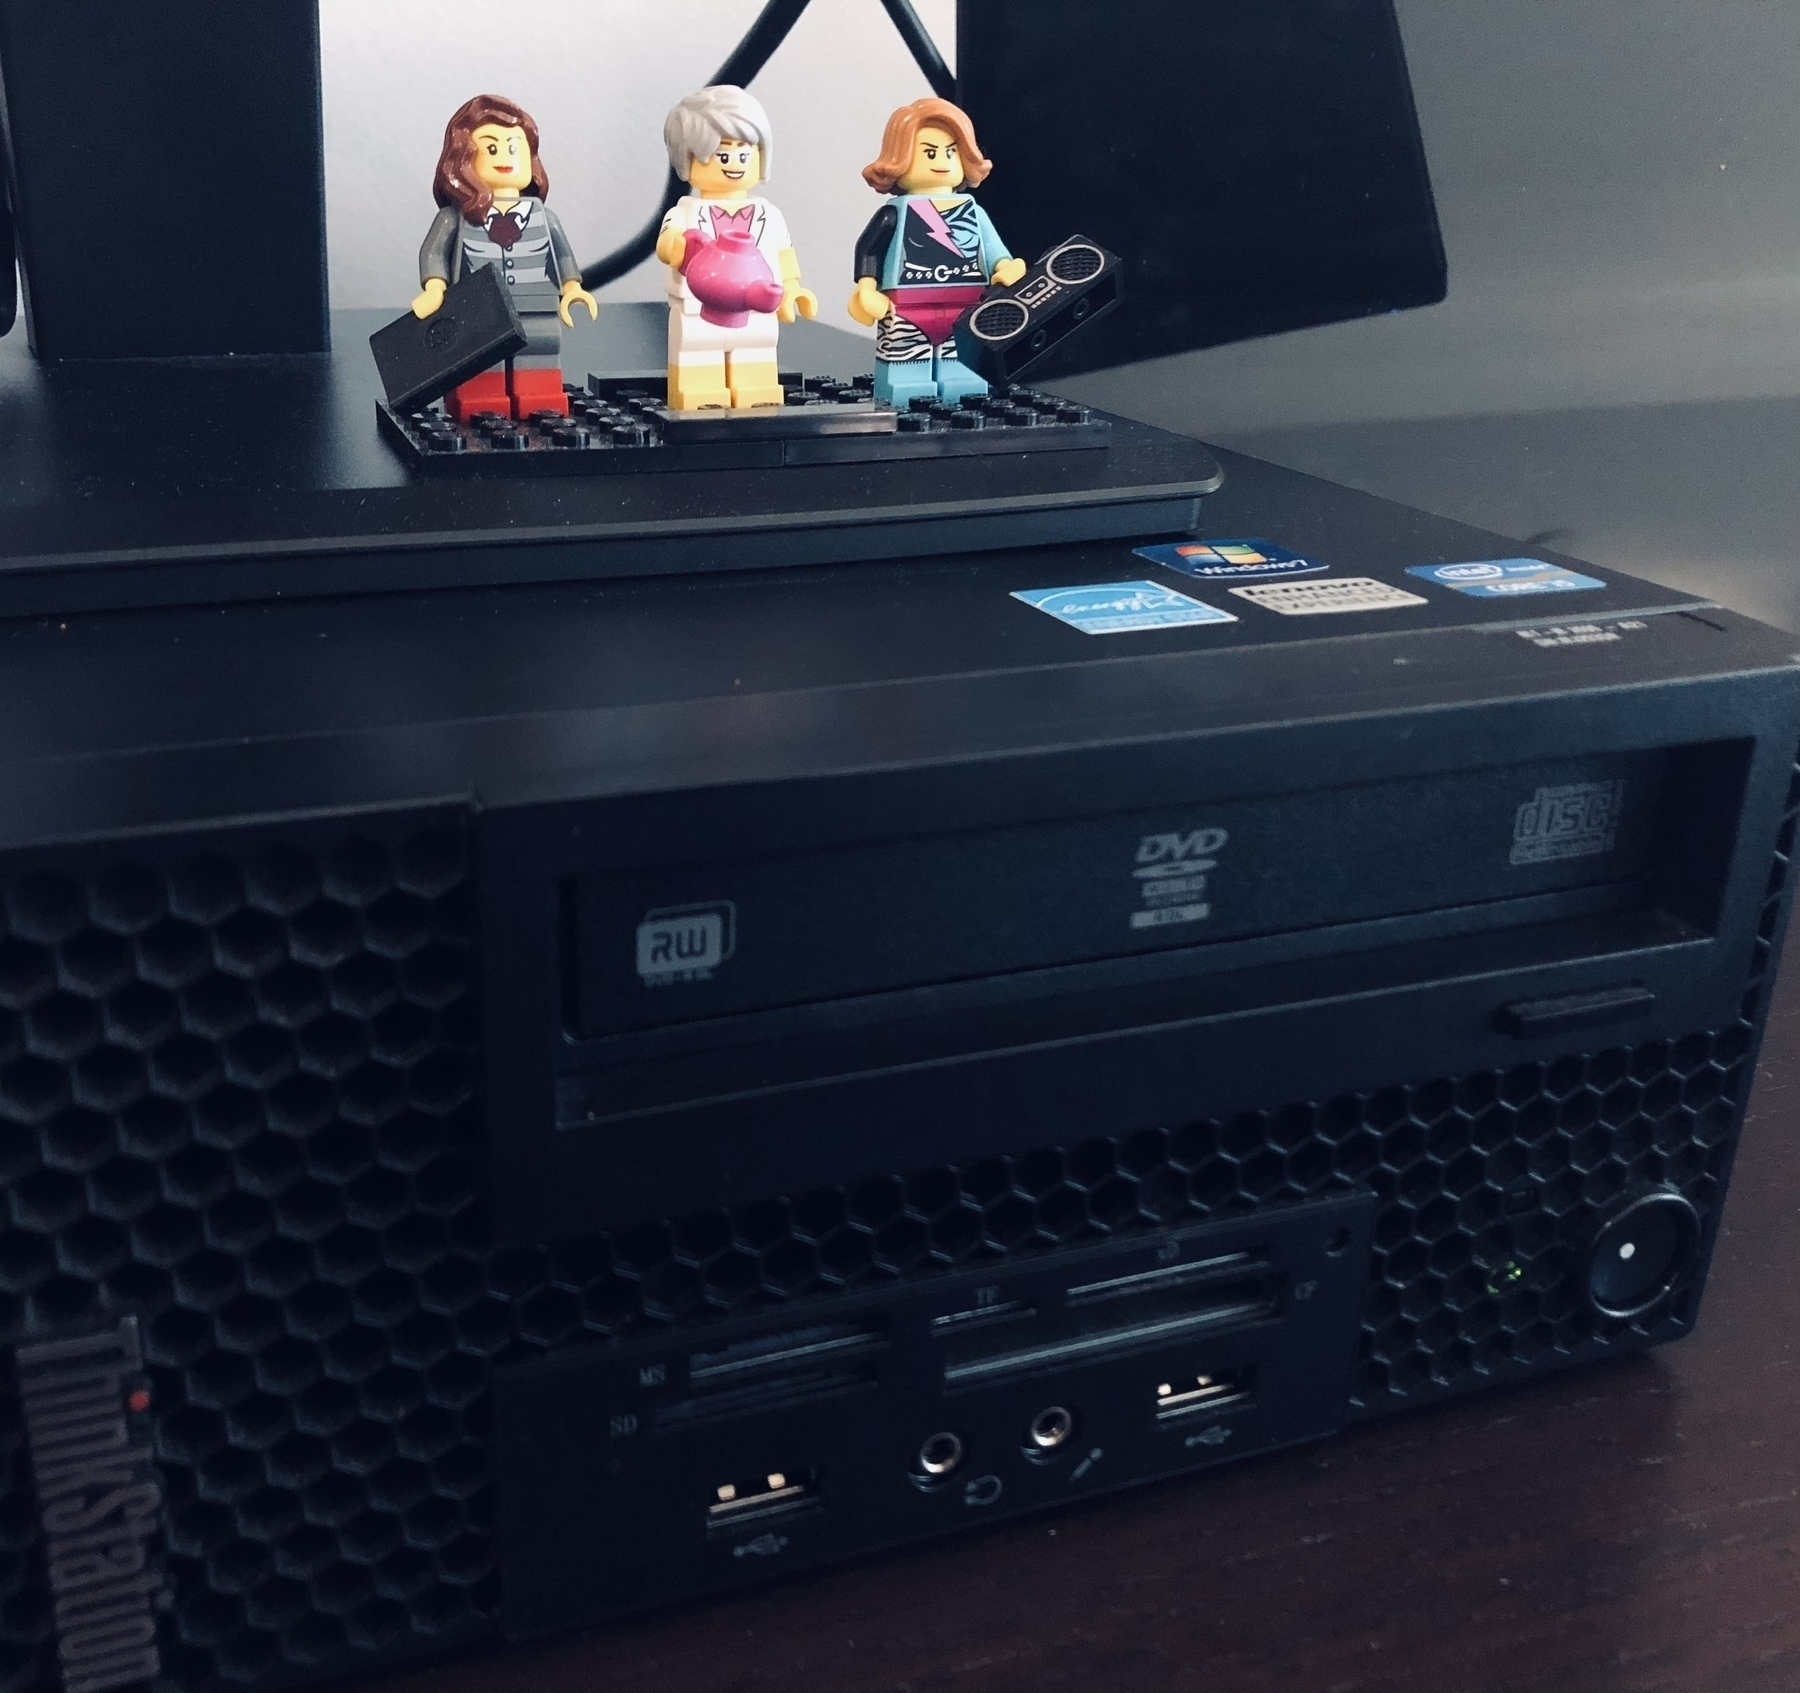 A closeup of Cheri's desktop PC with lego minifigs on top